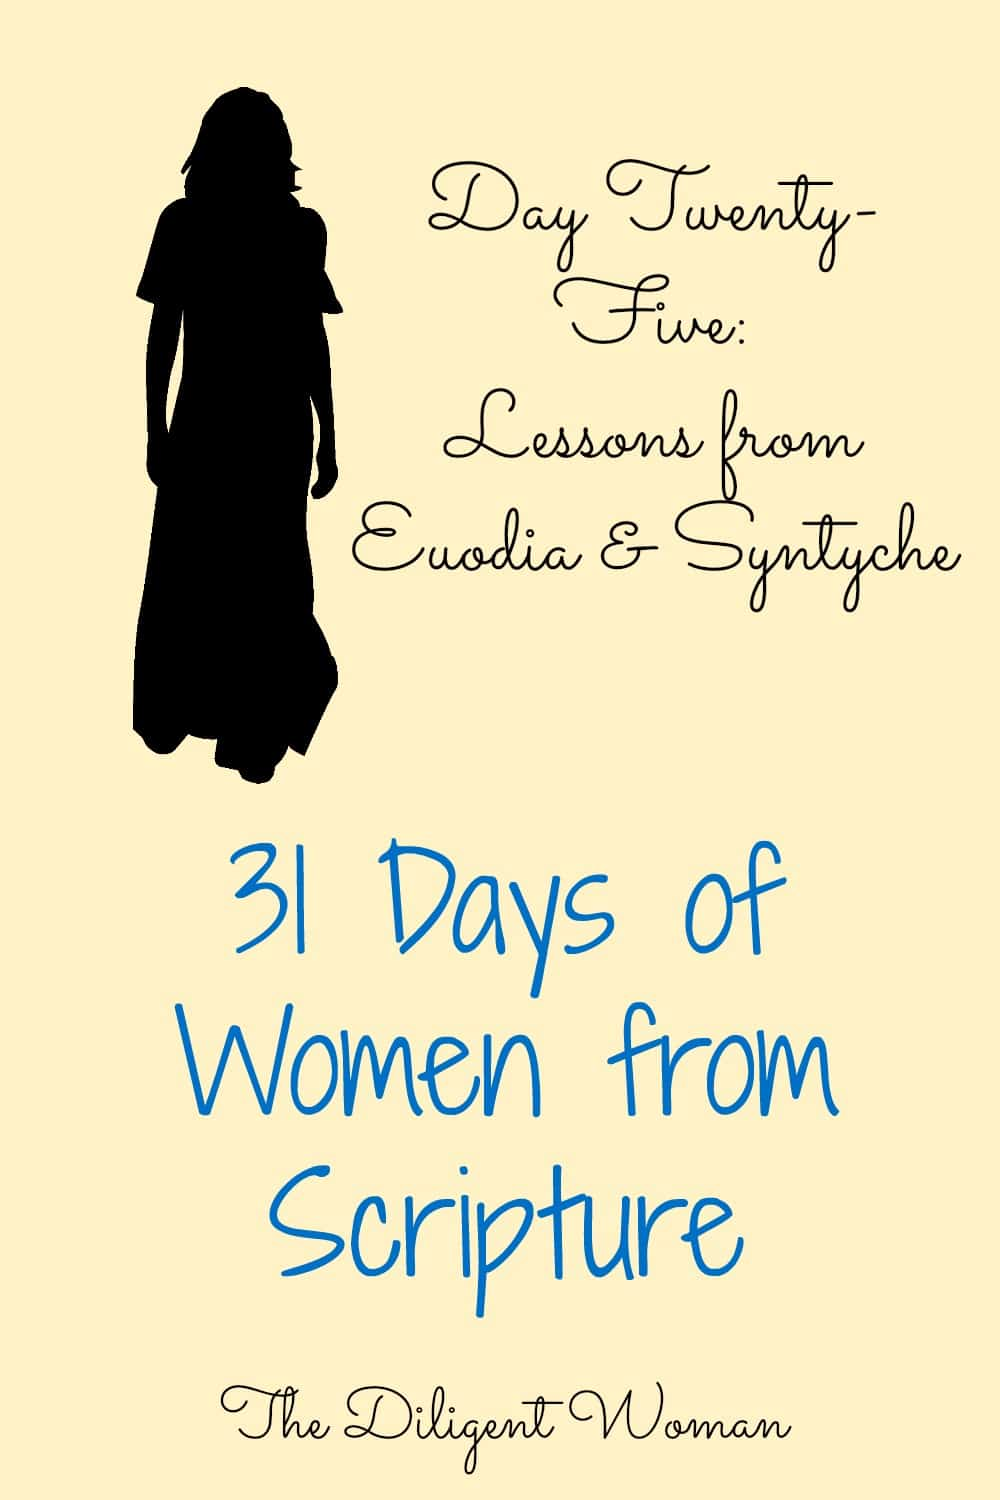 Lessons from Euodia & Syntyche